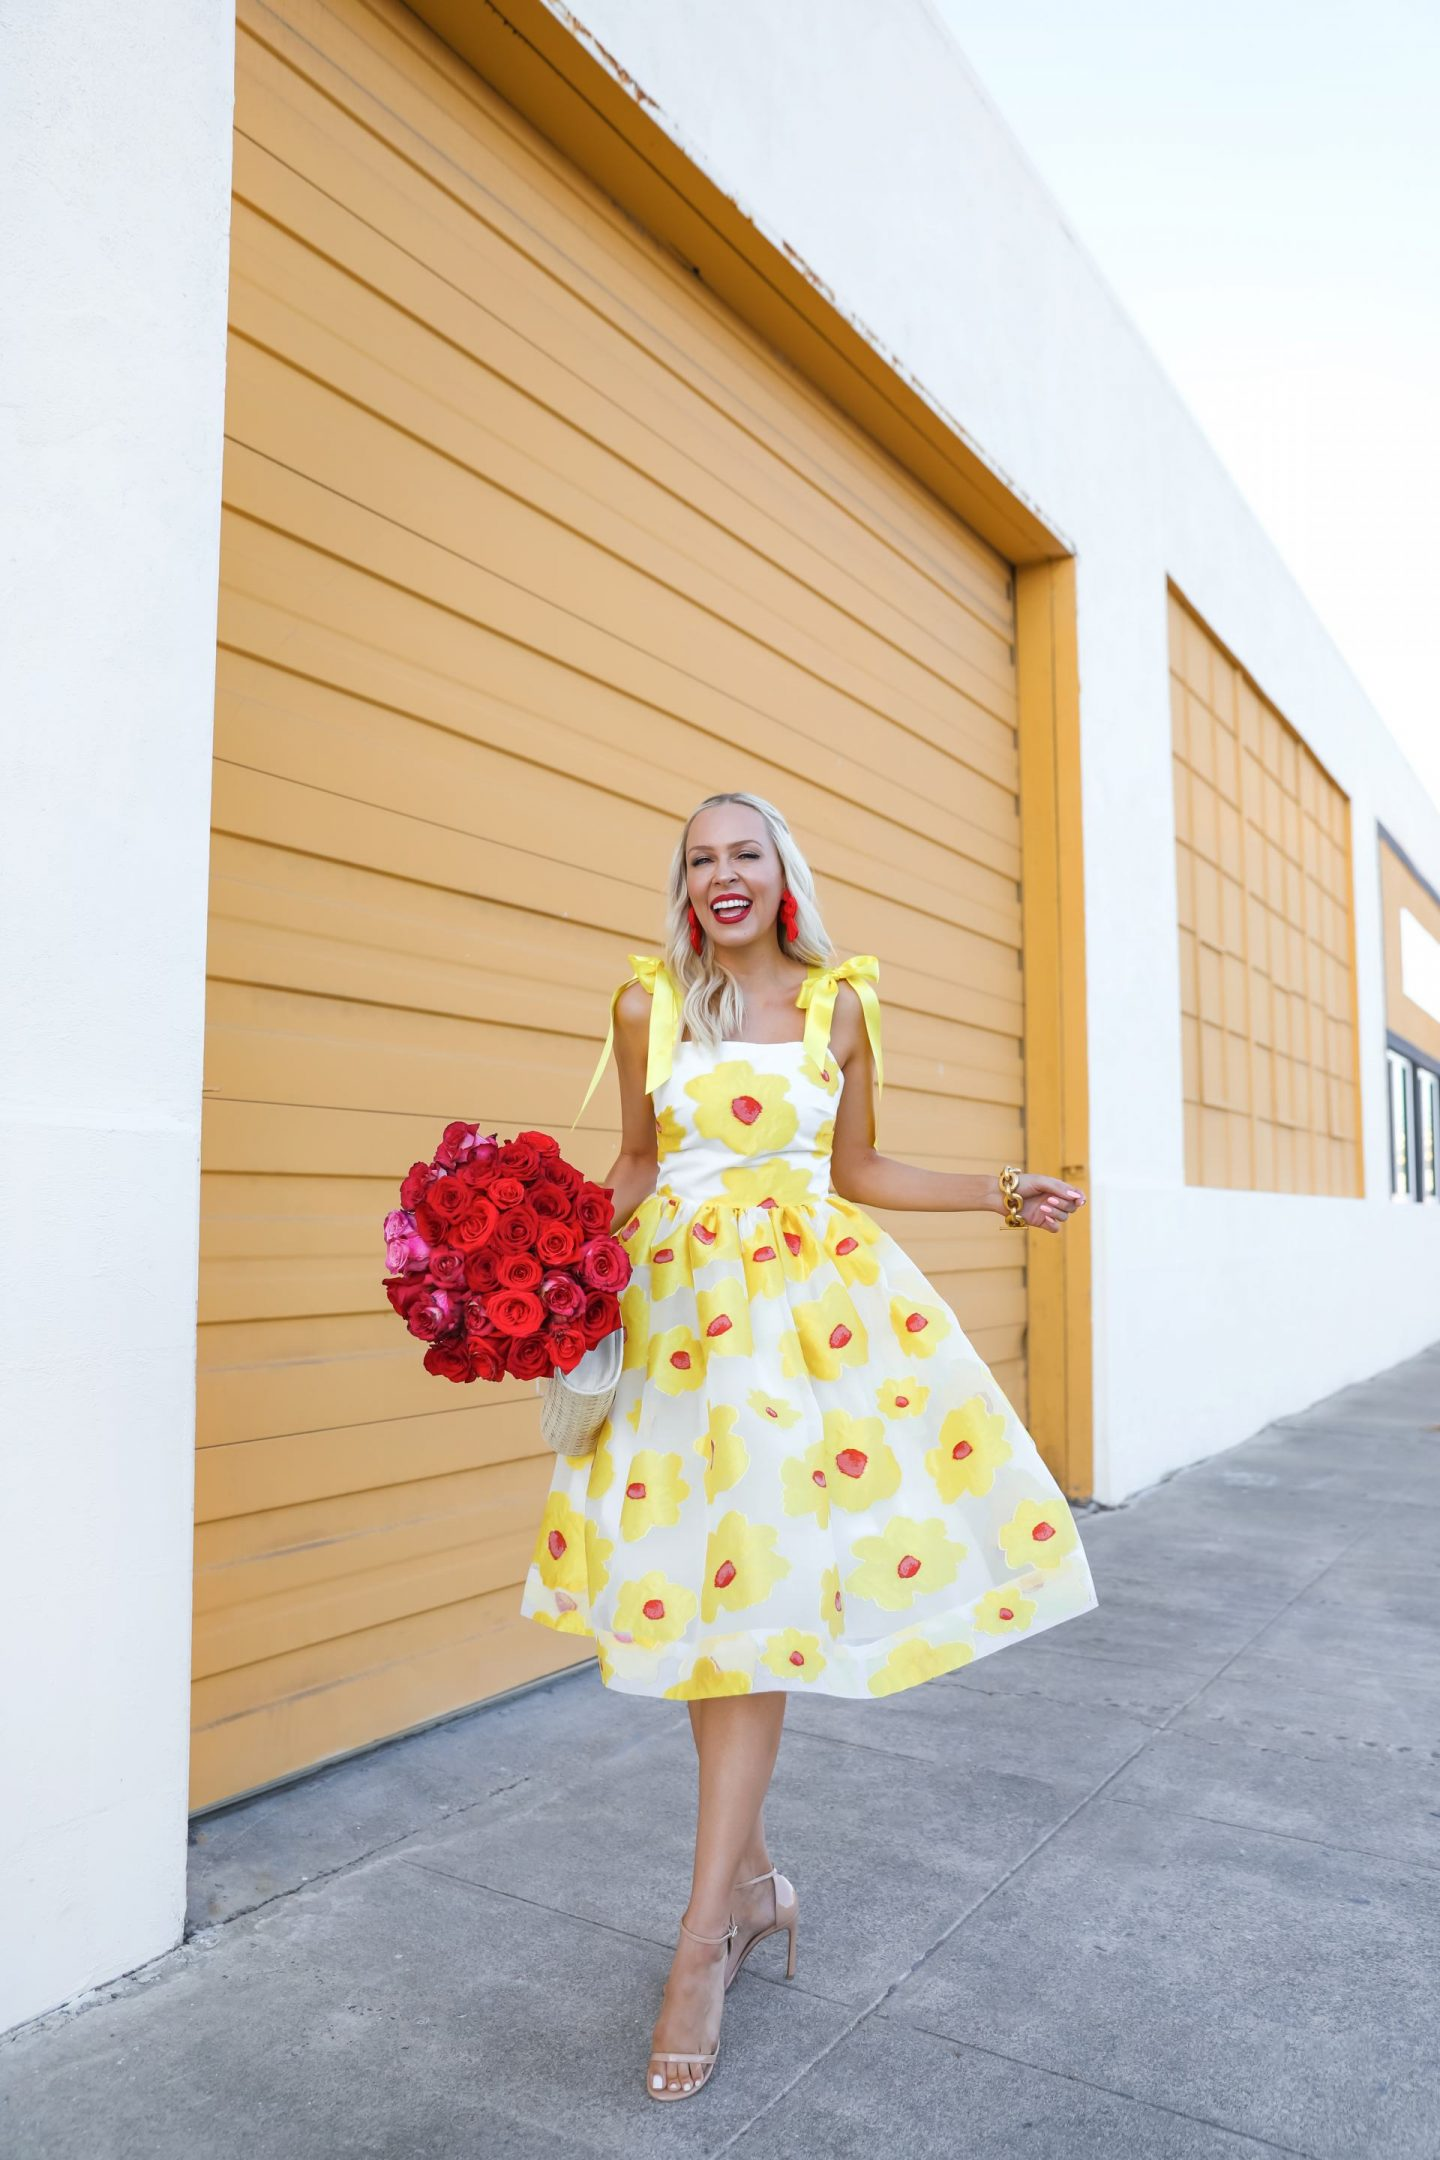 Independent designer spotlight, MAE Karalena yellow bow dress red roses, featured by Lombard & Fifth Veronica Levy. Small business feature, feminine fashion made in NYC.